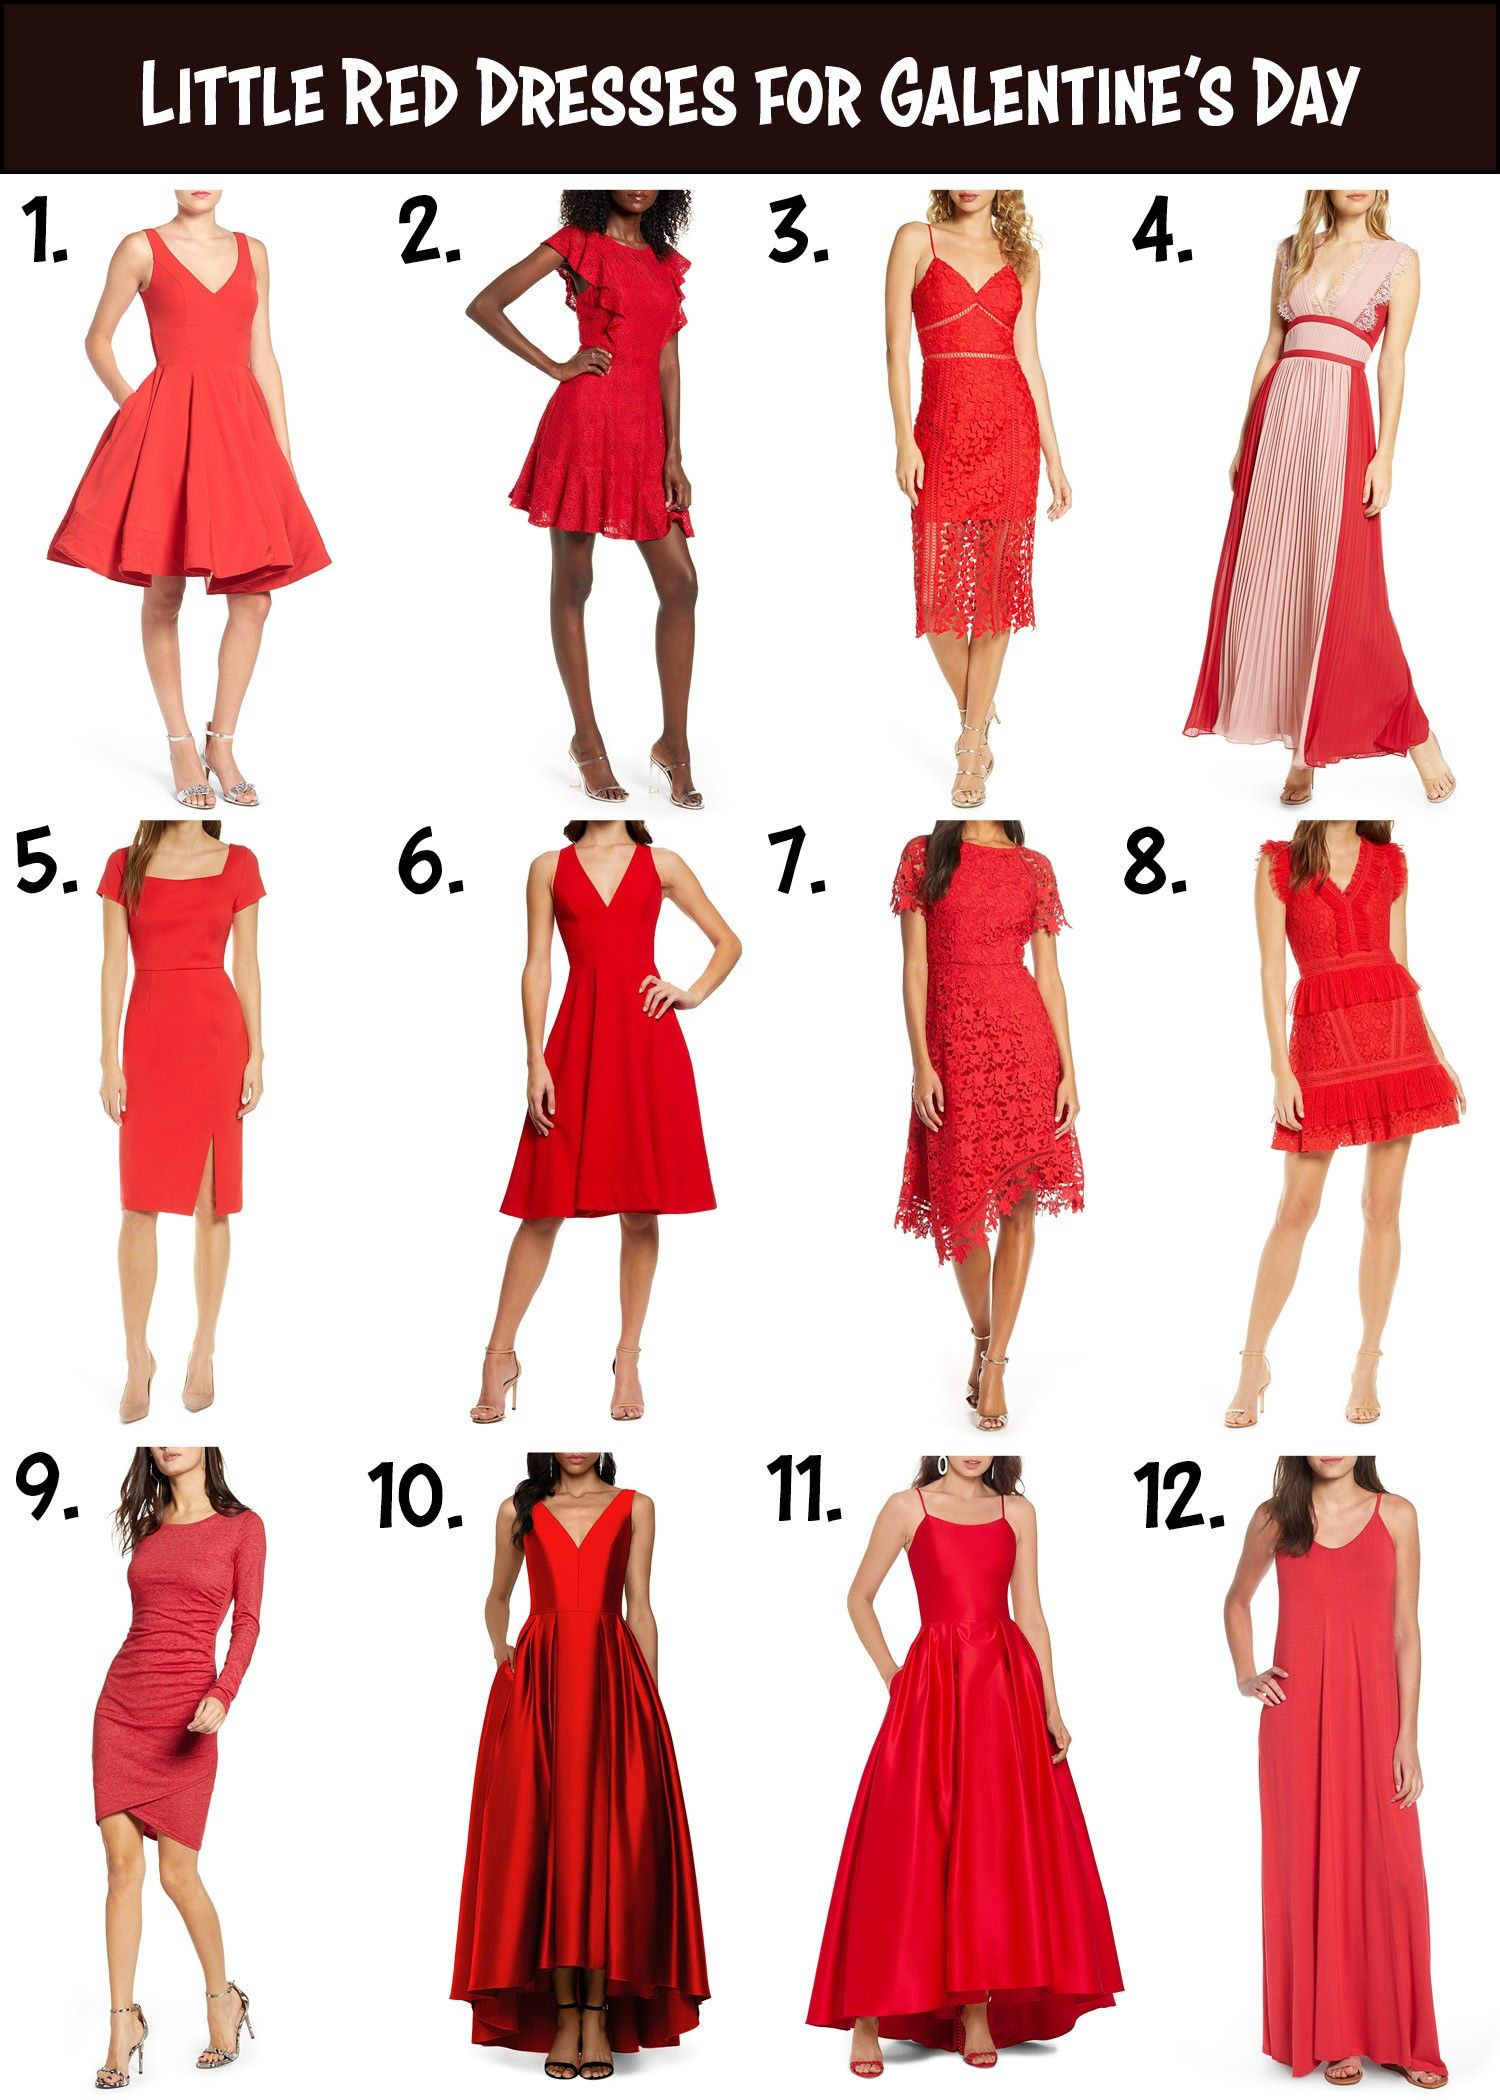 12 Little Red Dresses For Galentine S Day Fashion Dressed To Kill Little Red Dress Red Dresses Classy Red Dress Outfit [ 2100 x 1500 Pixel ]